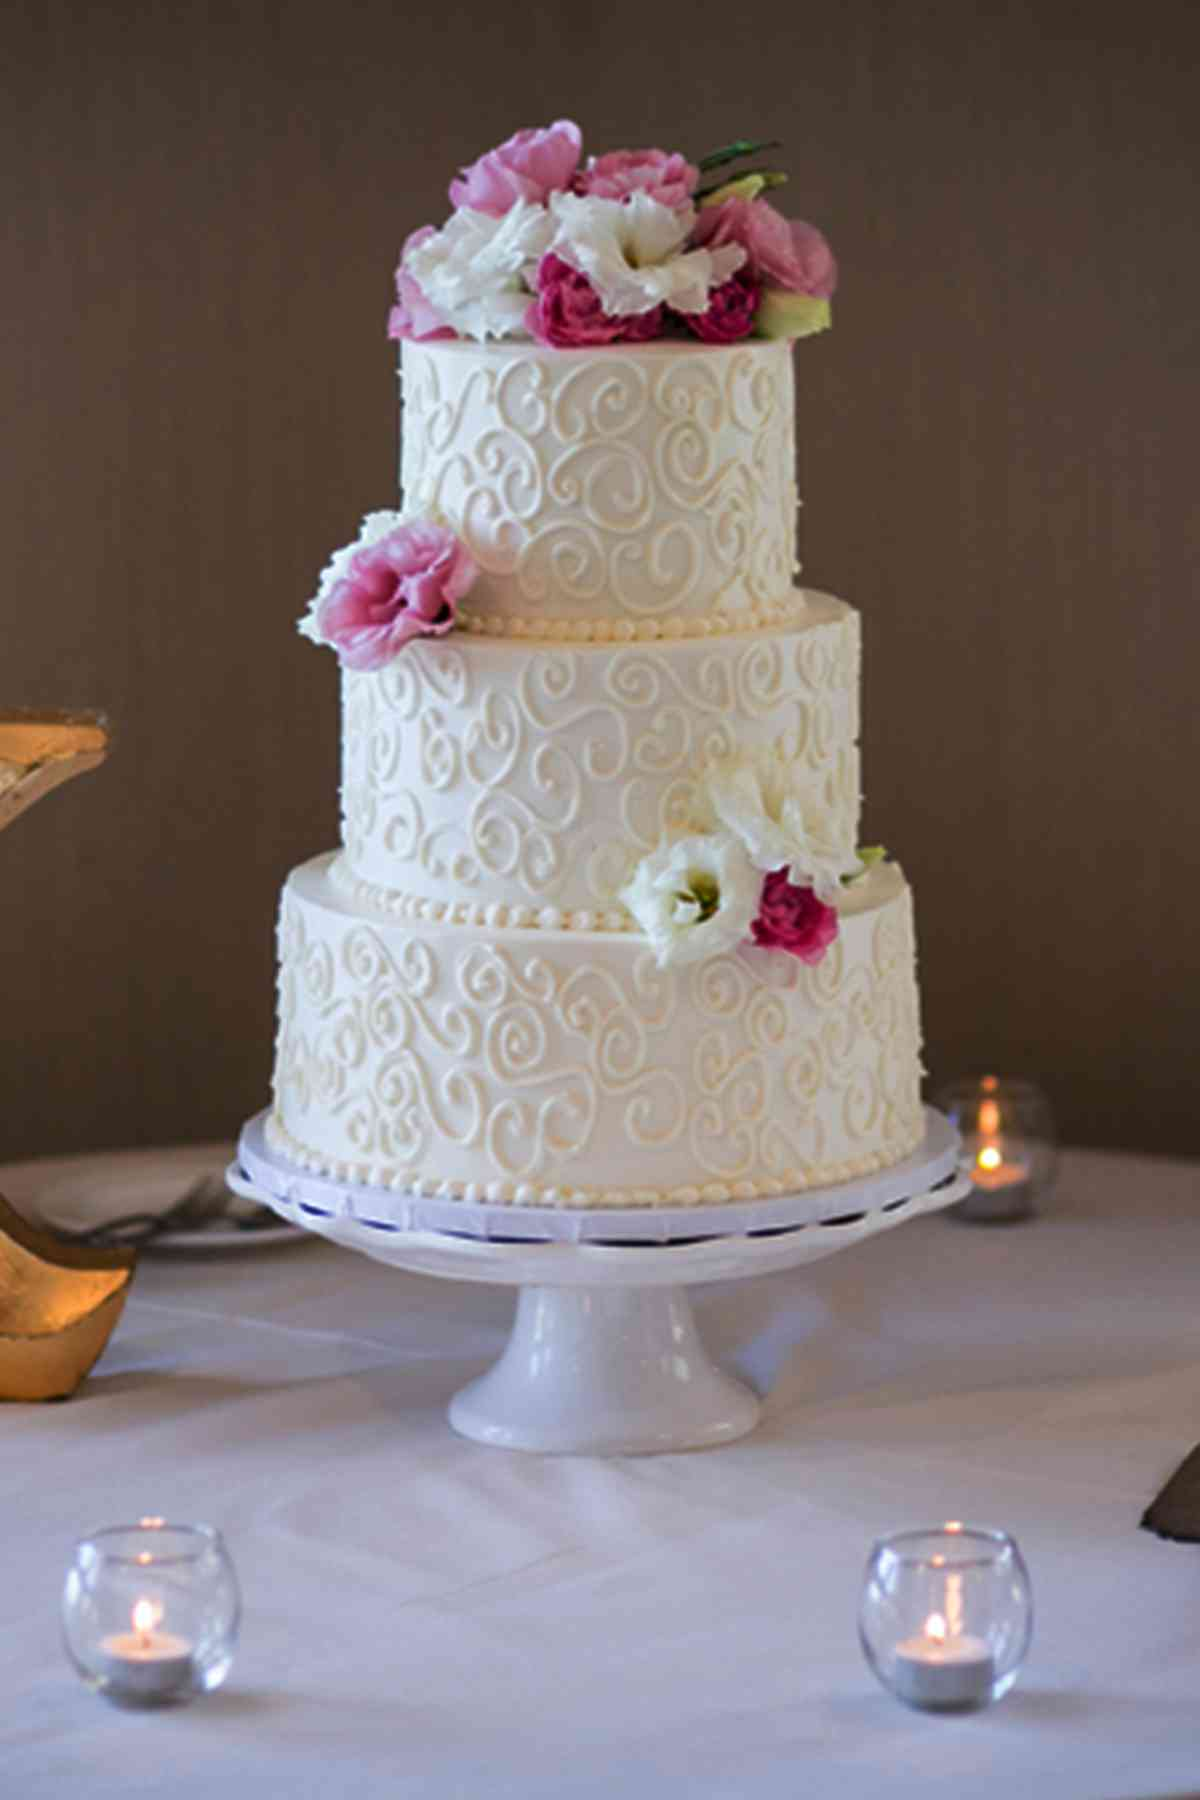 Simple Wedding Cake with Swirls     The French Gourmet Simple three layered white wedding cake with swirls  pearls and pink  flowers